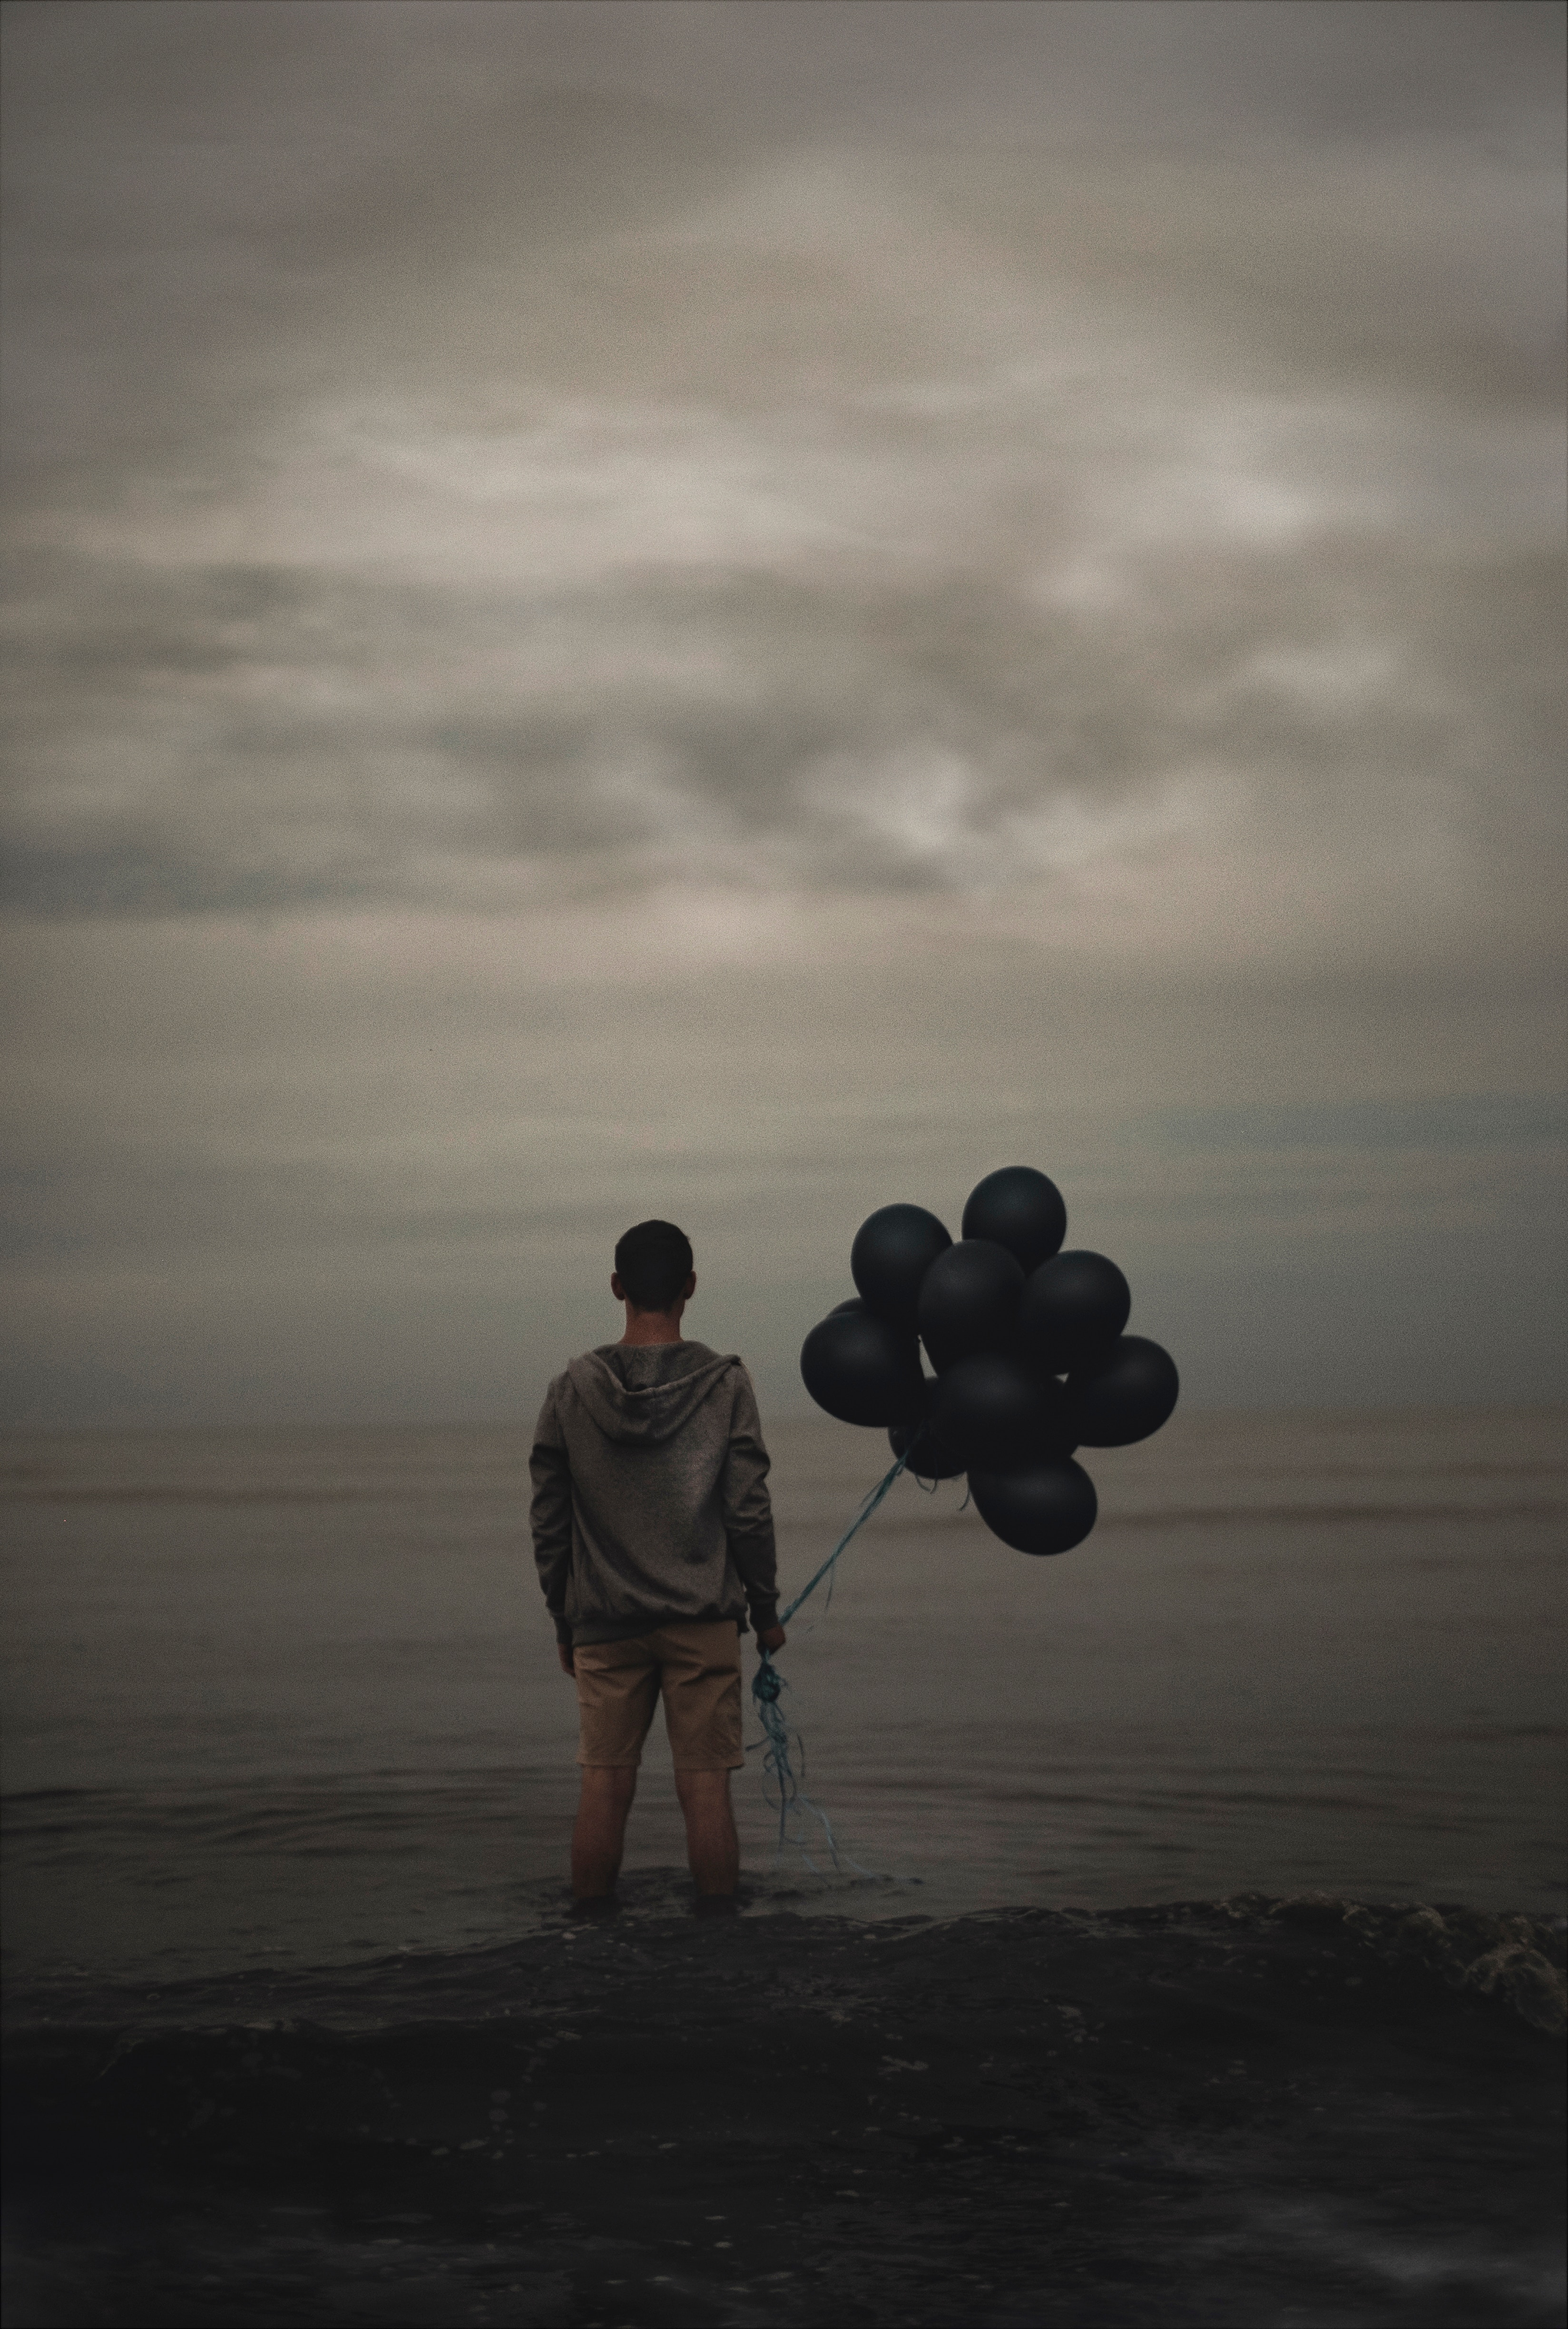 70739 Screensavers and Wallpapers Guy for phone. Download Sea, Balloons, Miscellanea, Miscellaneous, Loneliness, Guy pictures for free